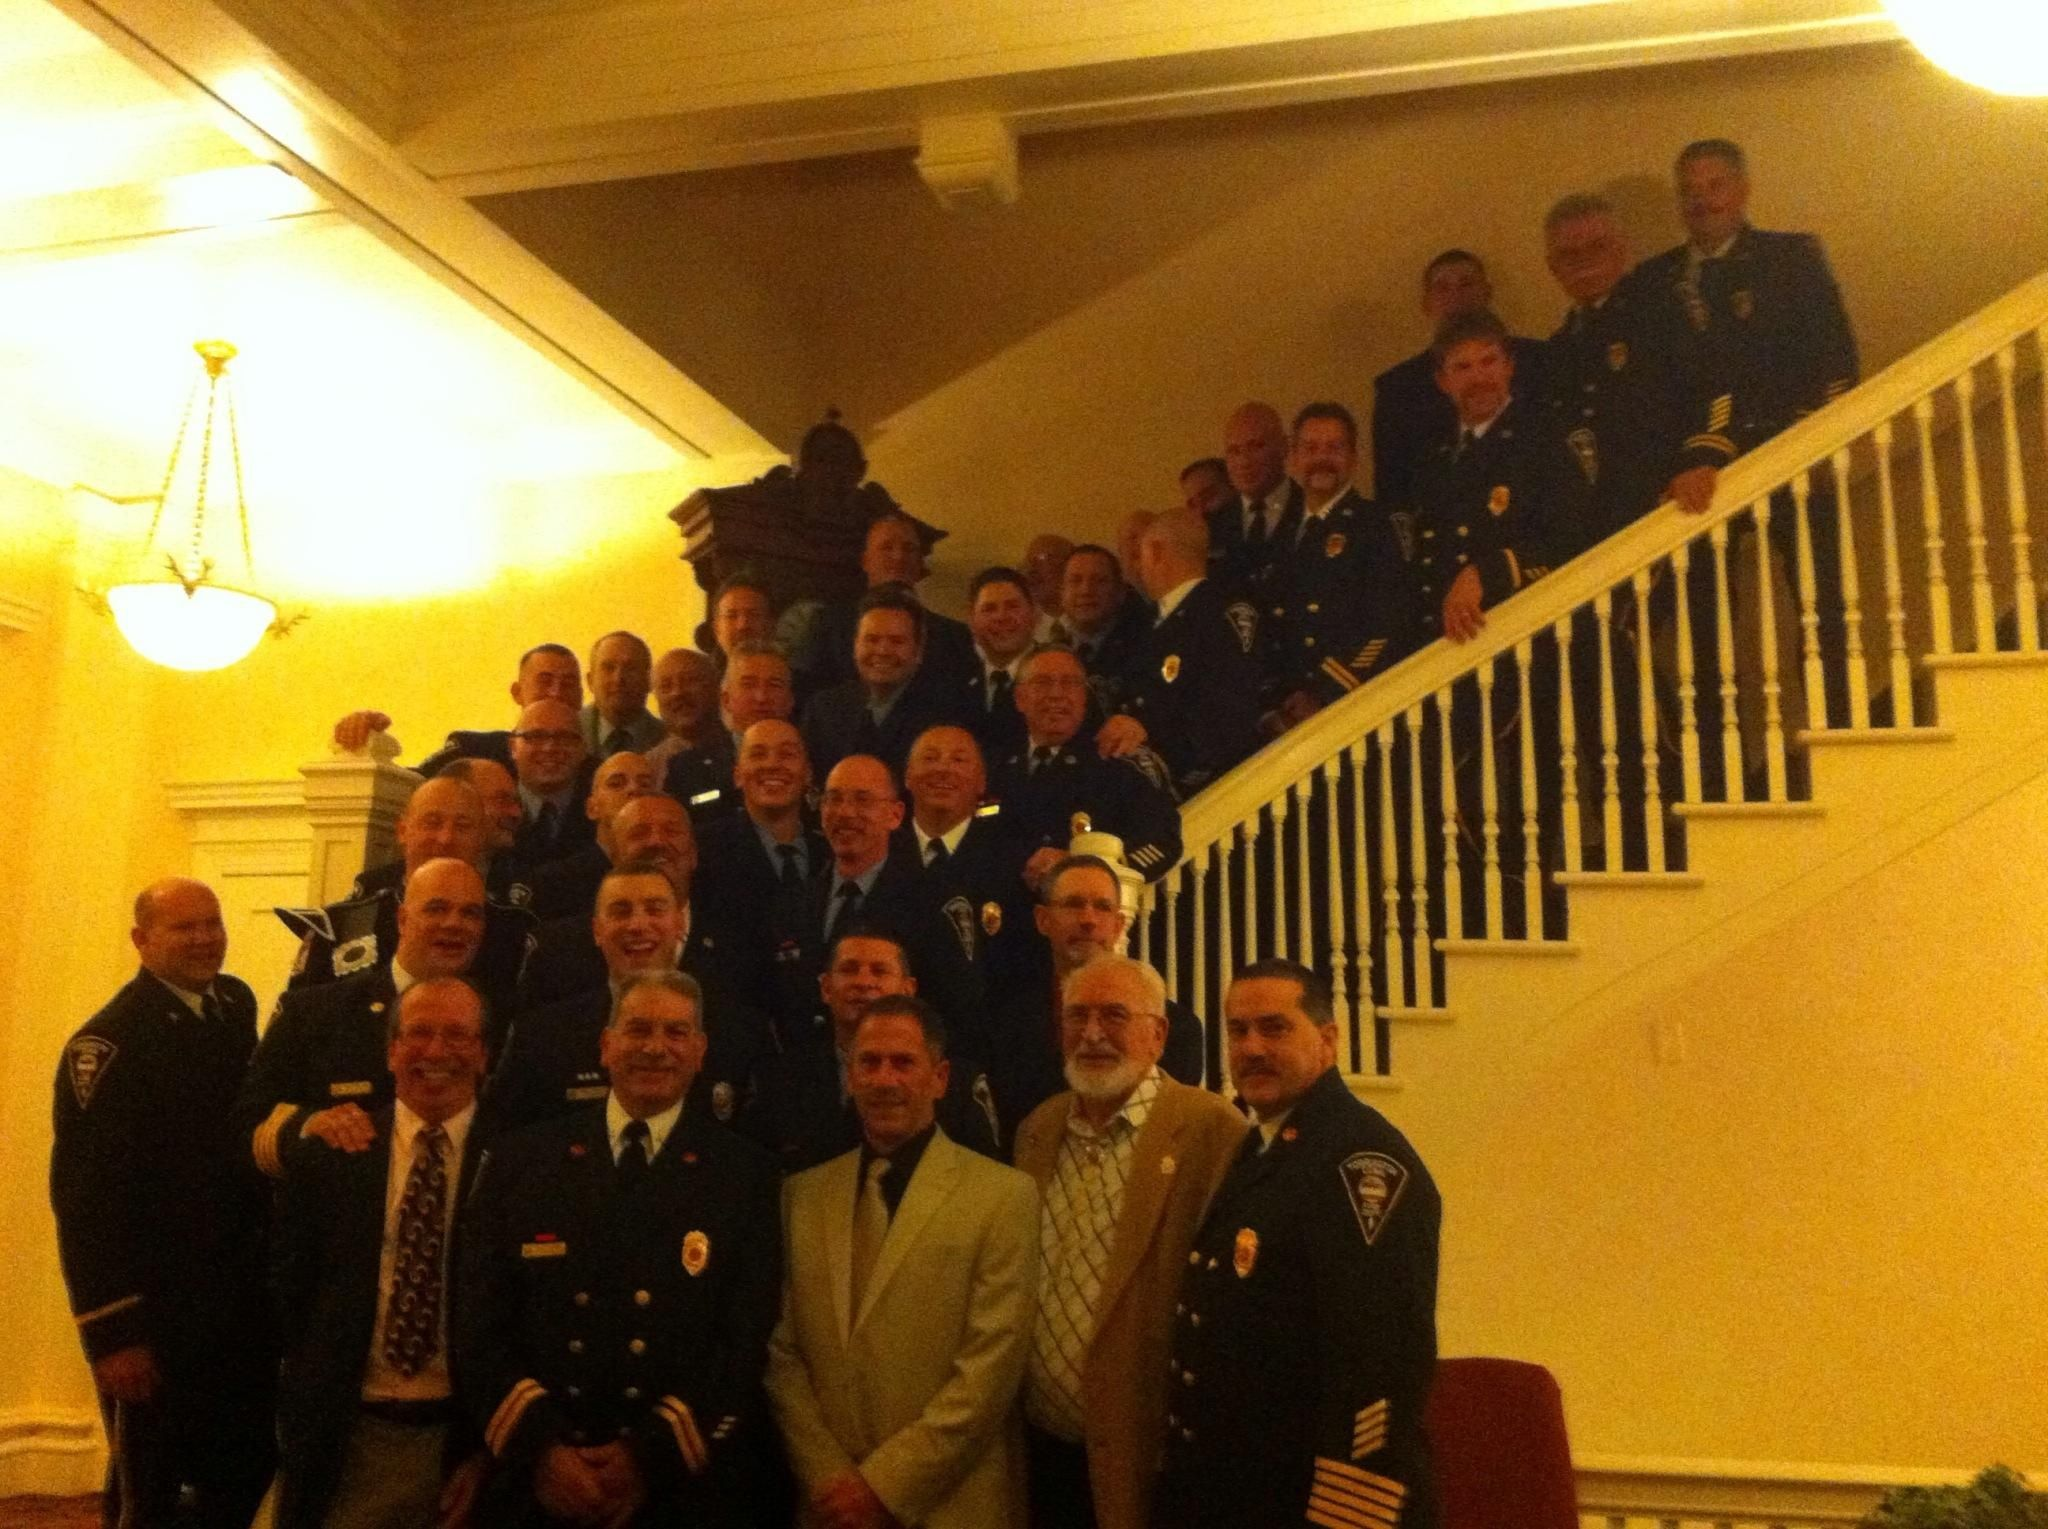 Present and past members of the torrington fire department